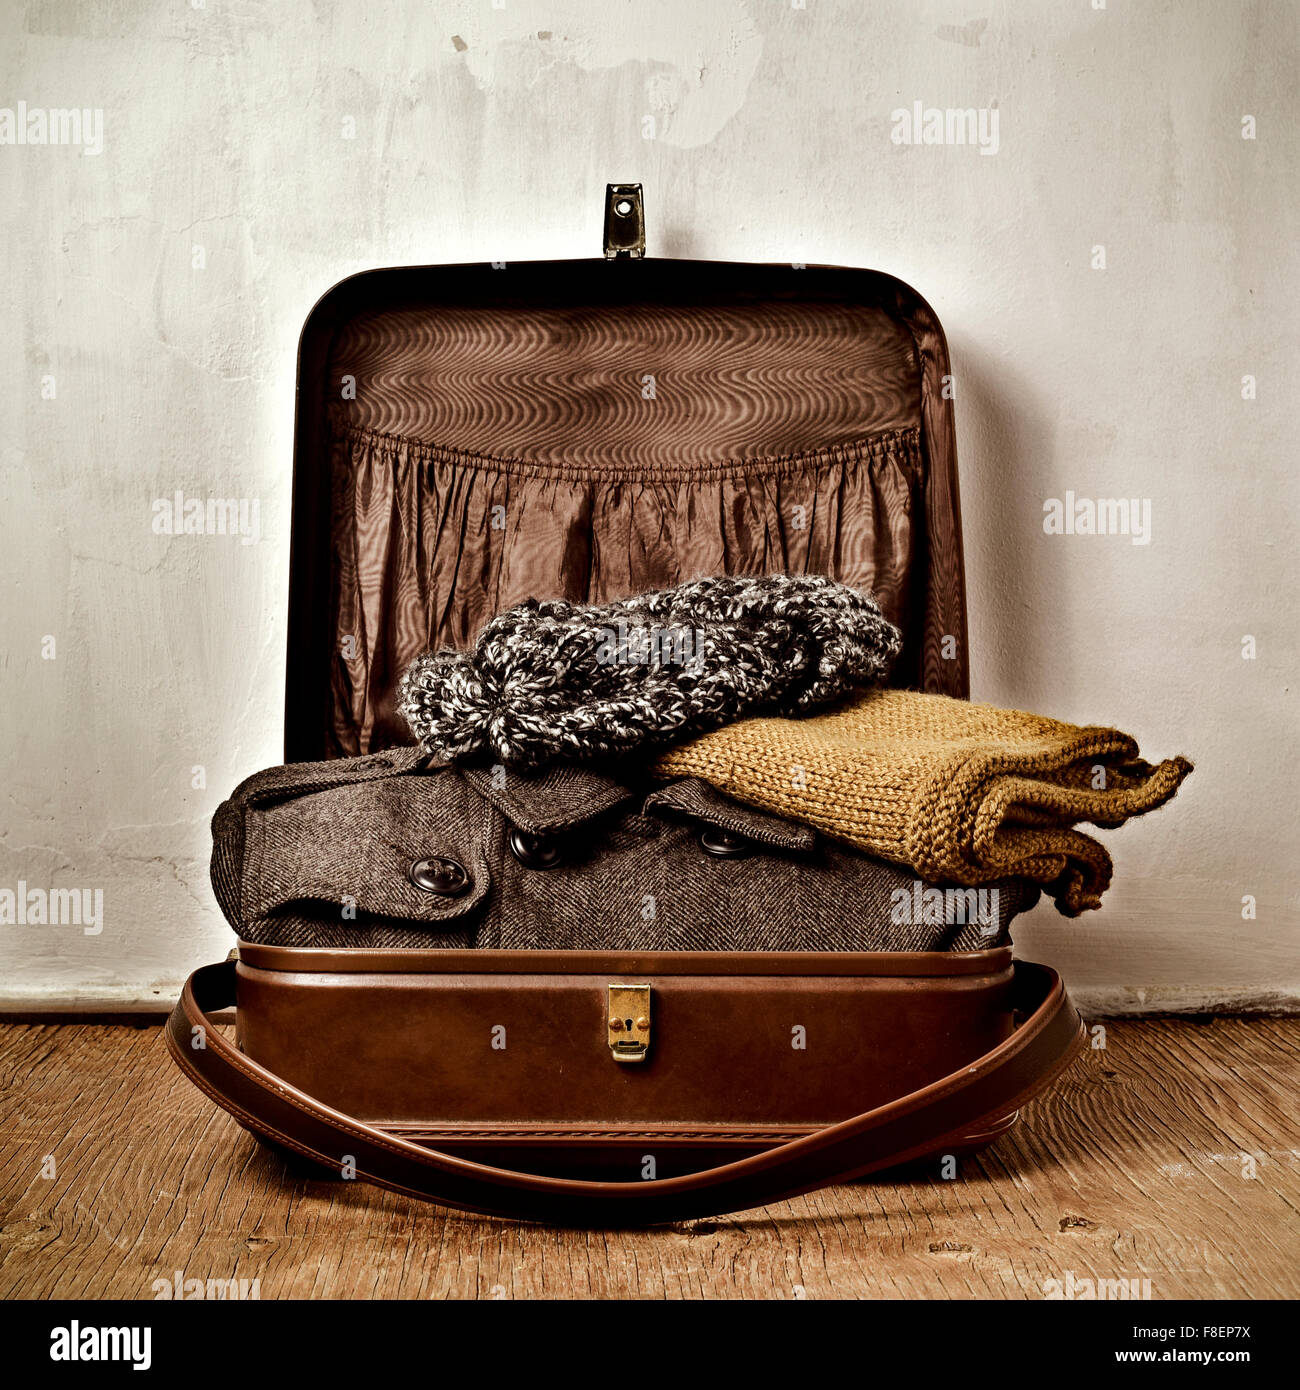 an old brown suitcase with some warm clothing, such as an overcoat, a scarf and a knit cap - Stock Image